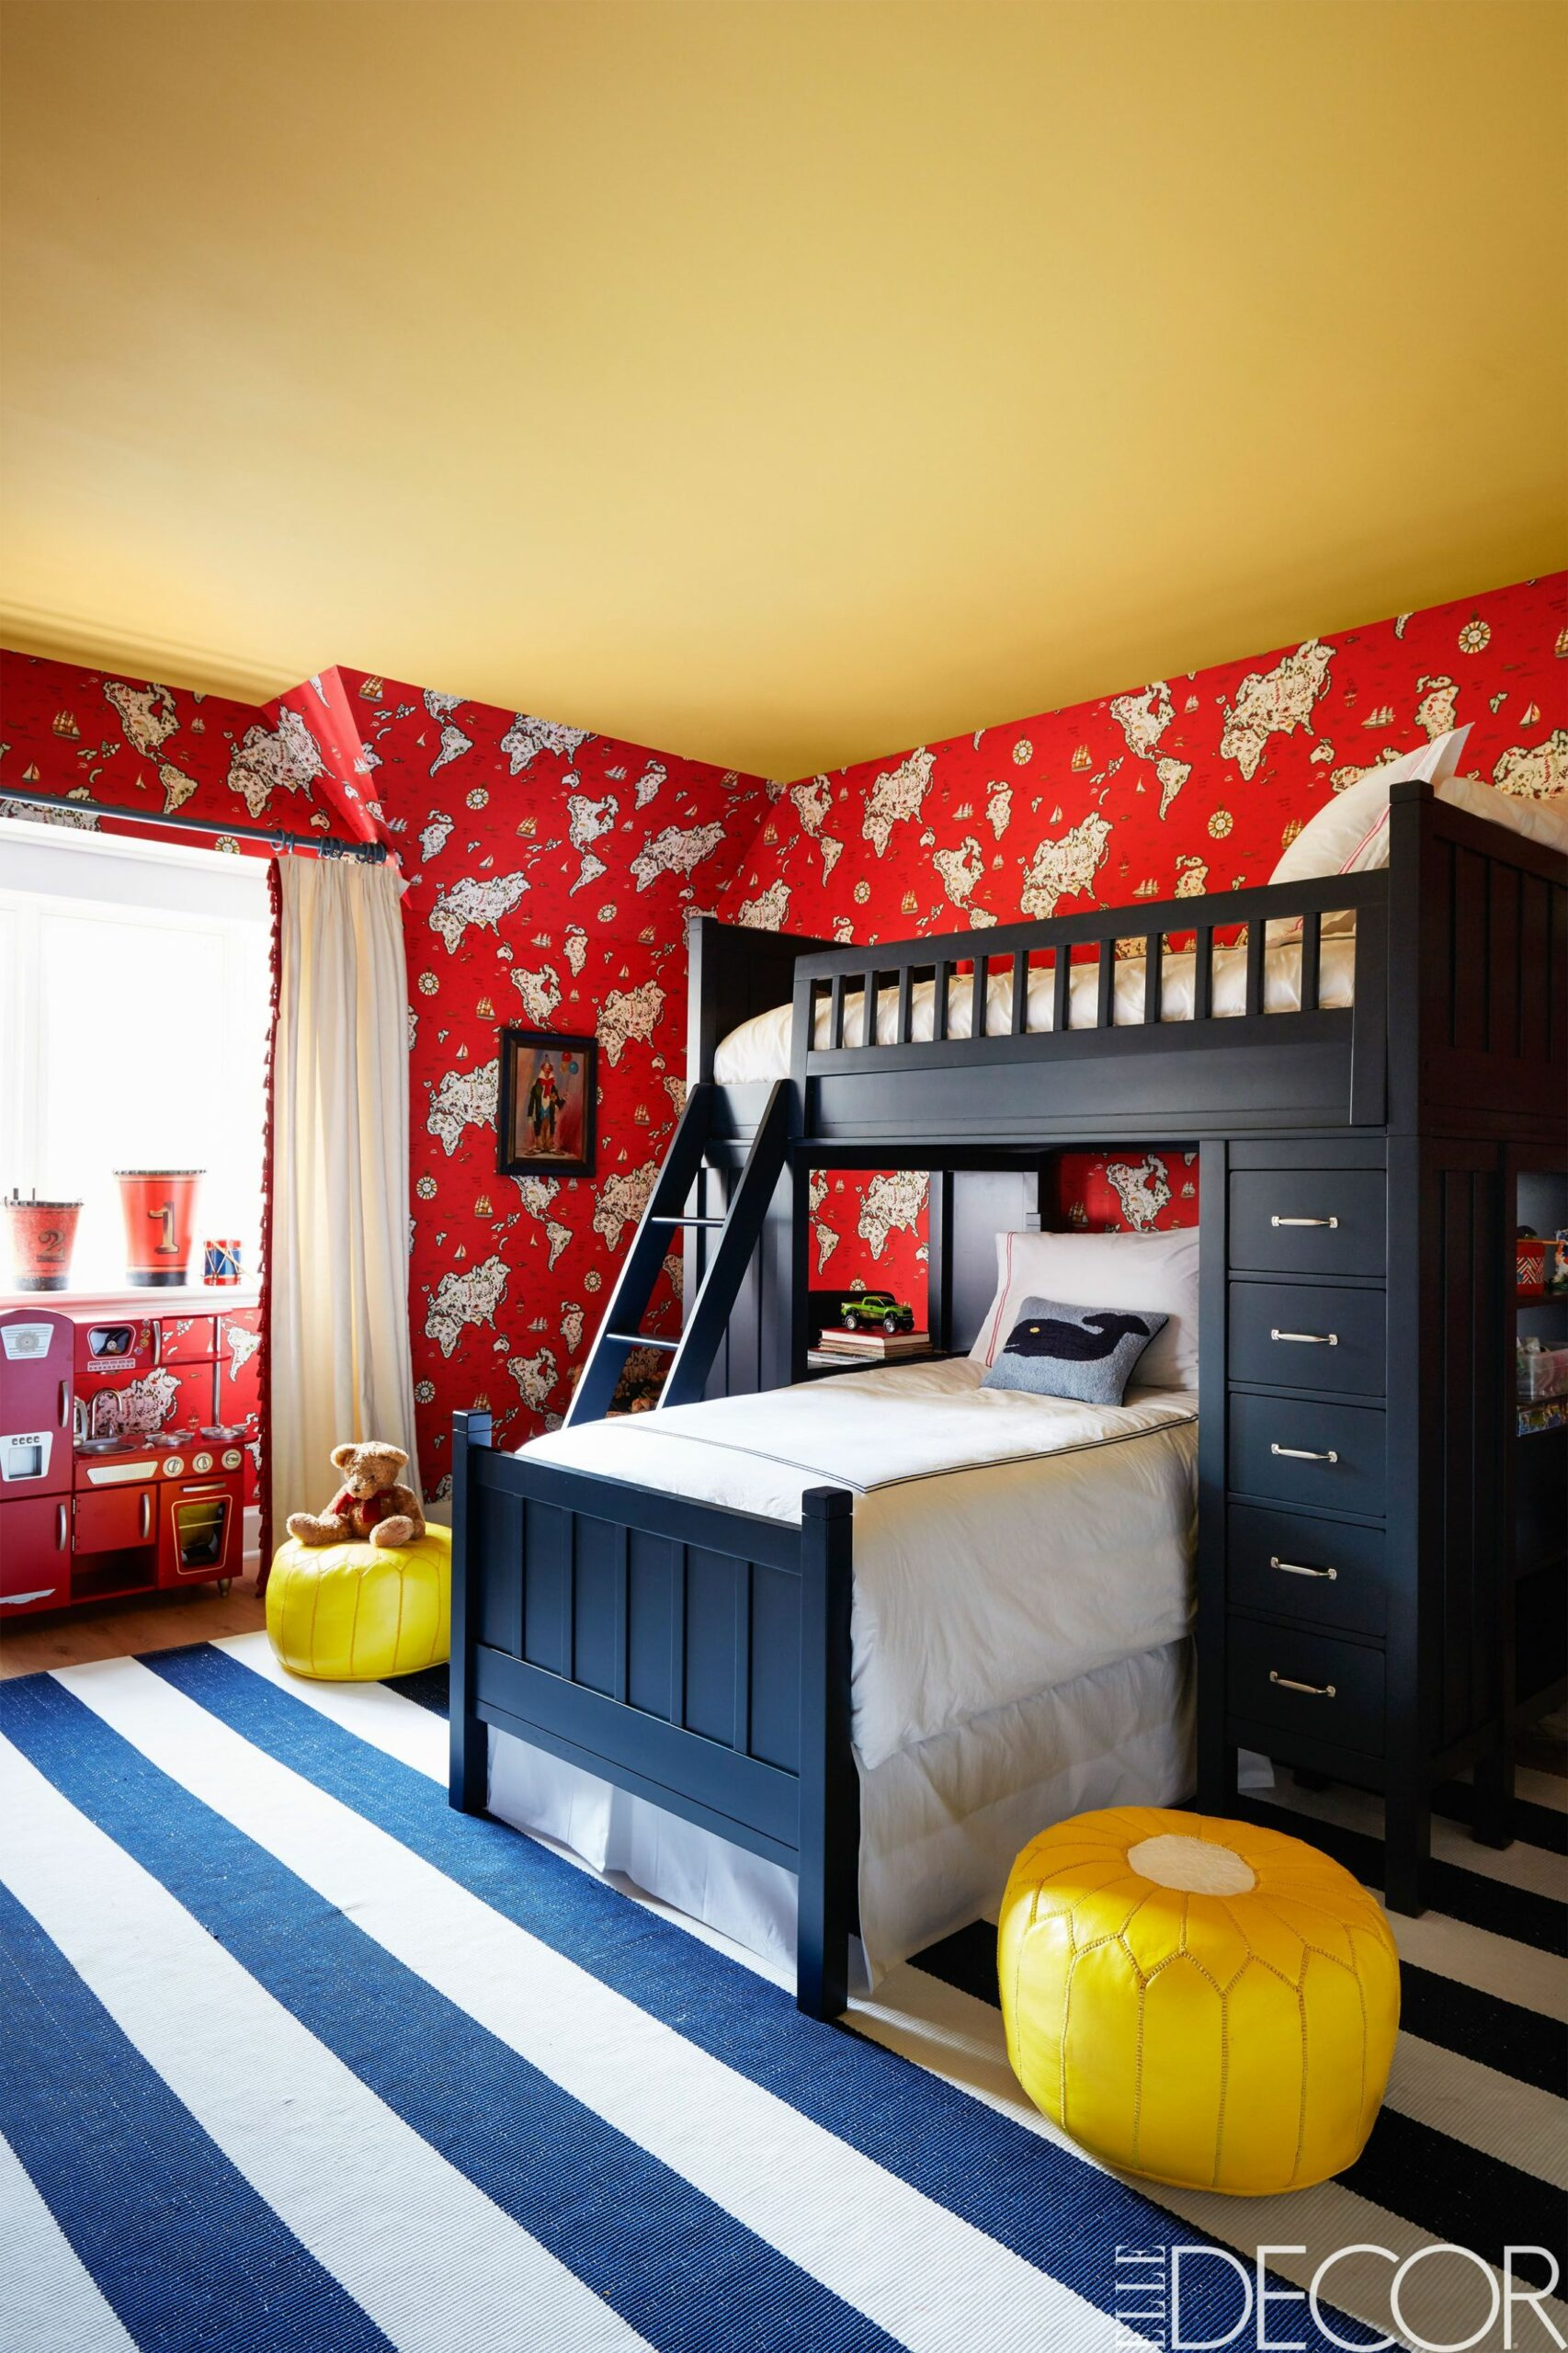 11 Cool Kids' Room Ideas - How to Decorate a Child's Bedroom